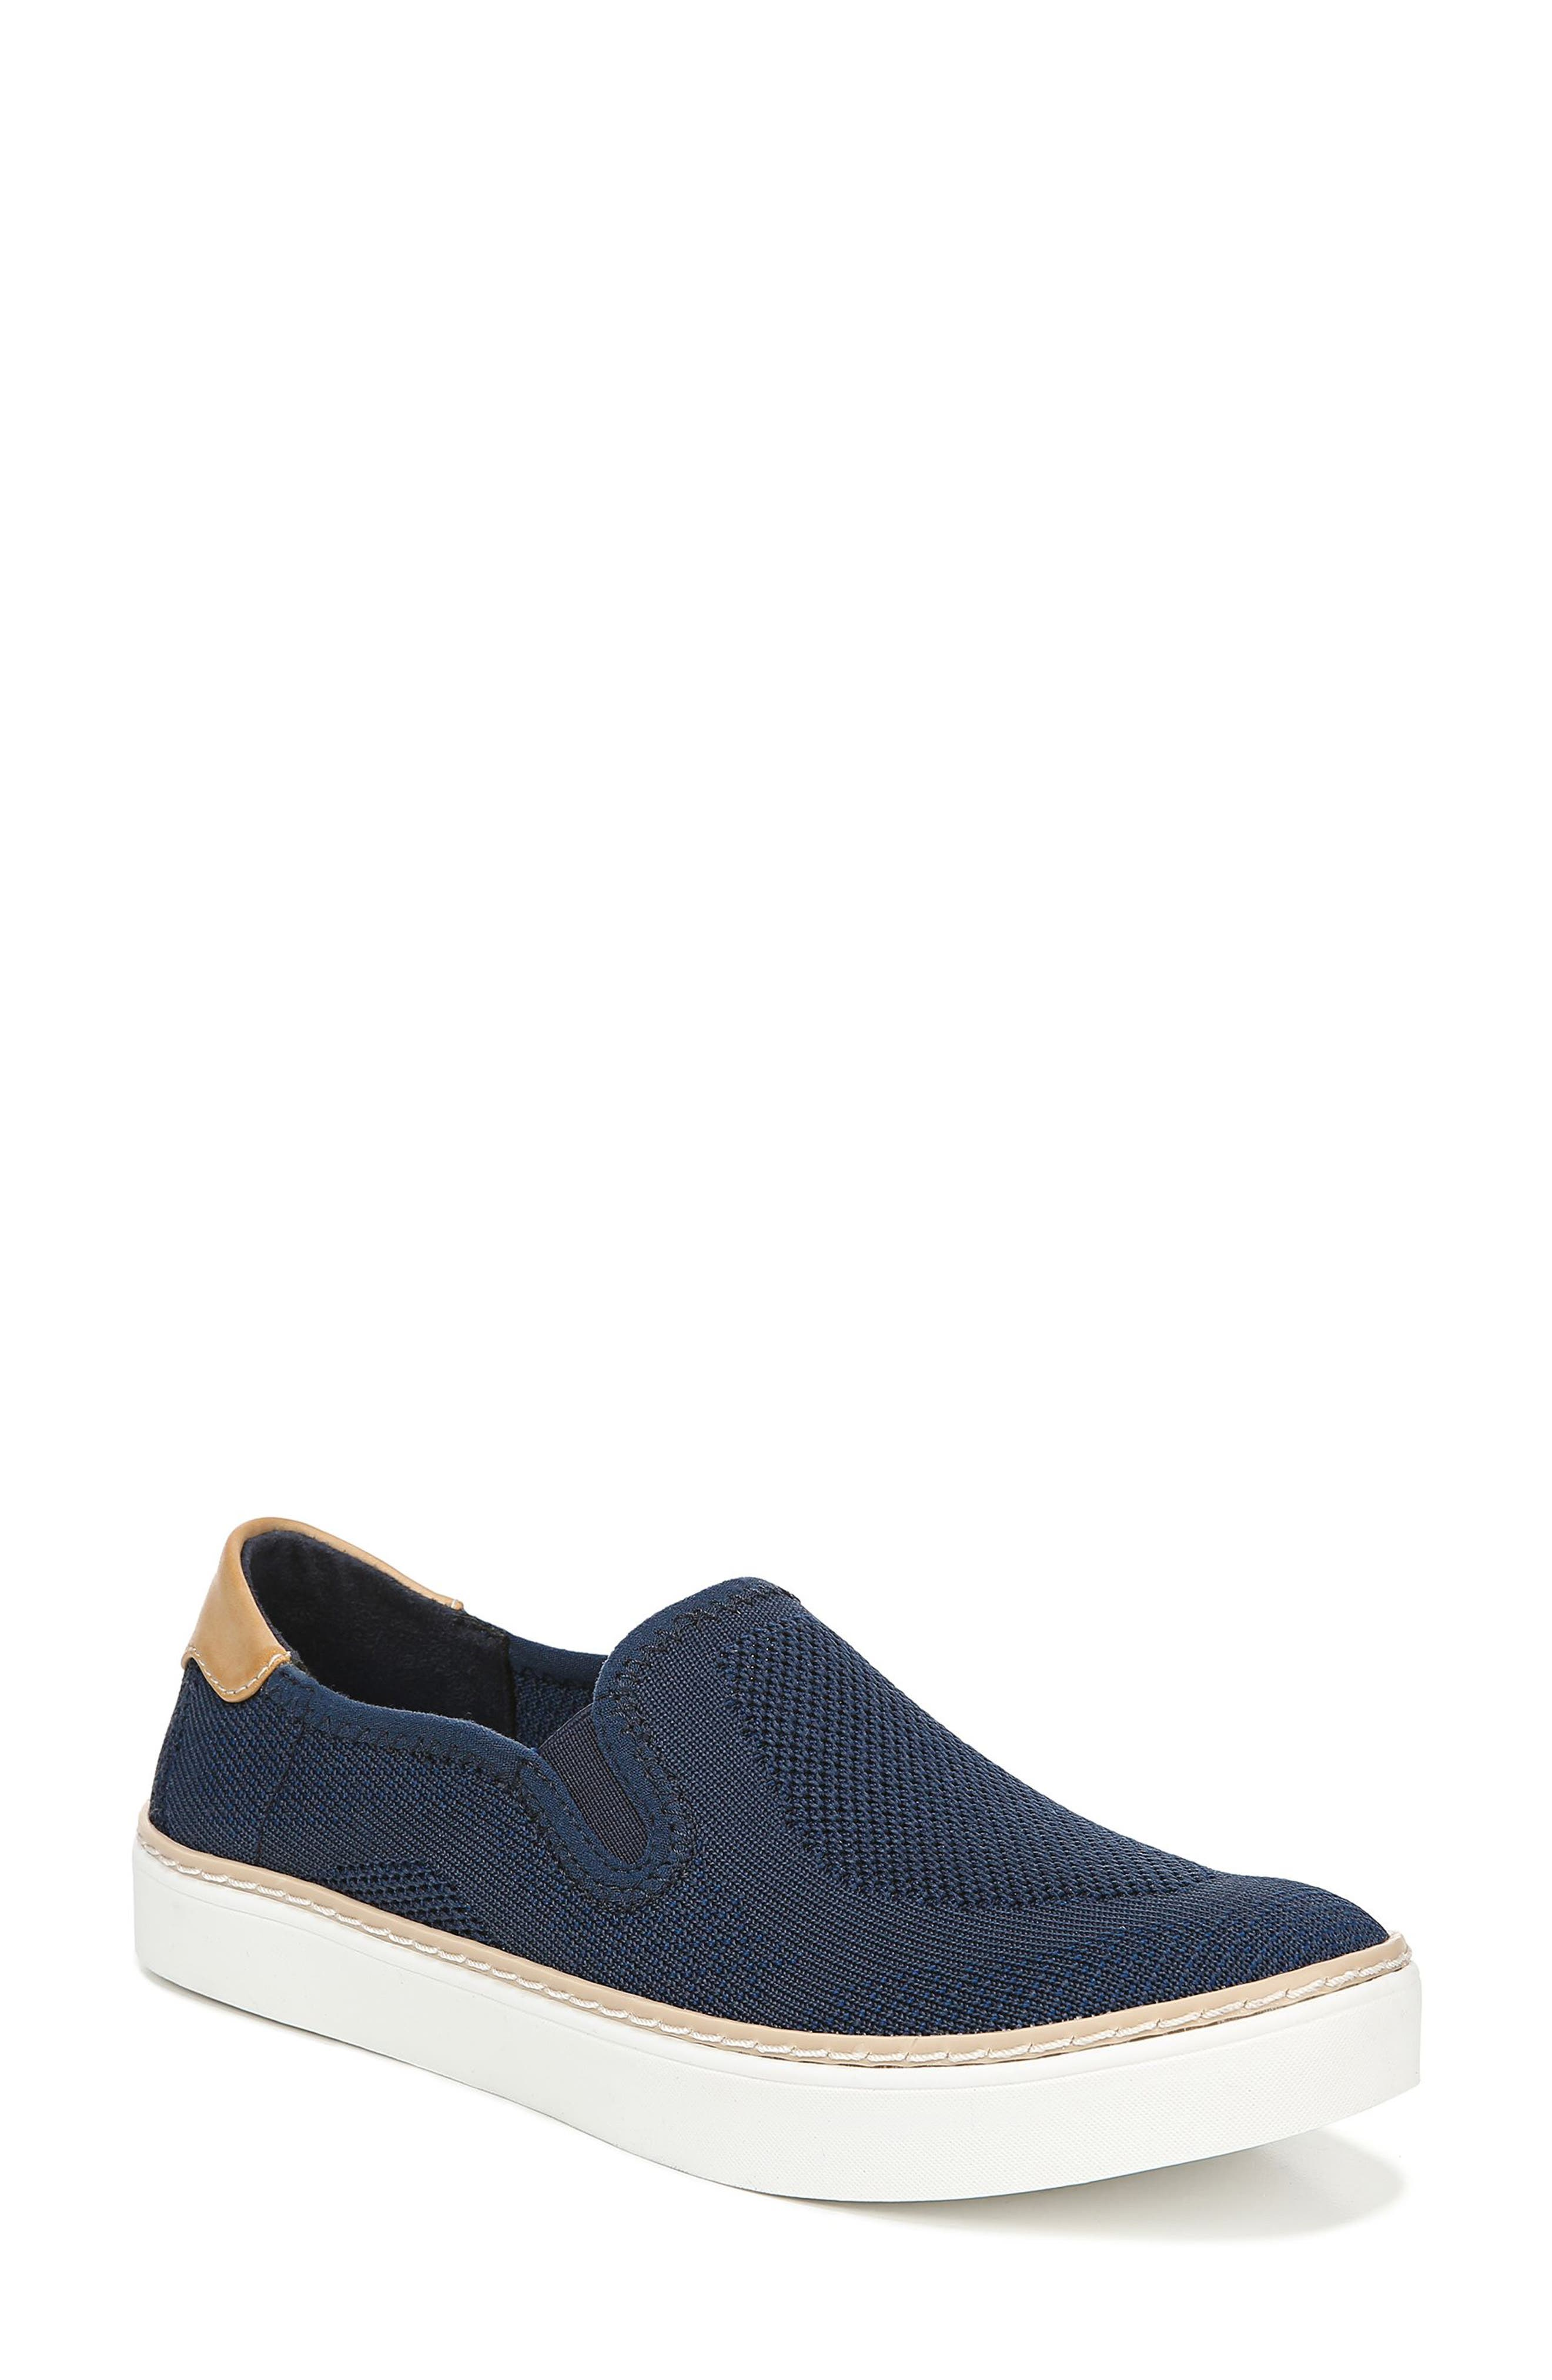 DR. SCHOLL'S, Madi Slip-On Sneaker, Main thumbnail 1, color, NAVY KNIT FABRIC